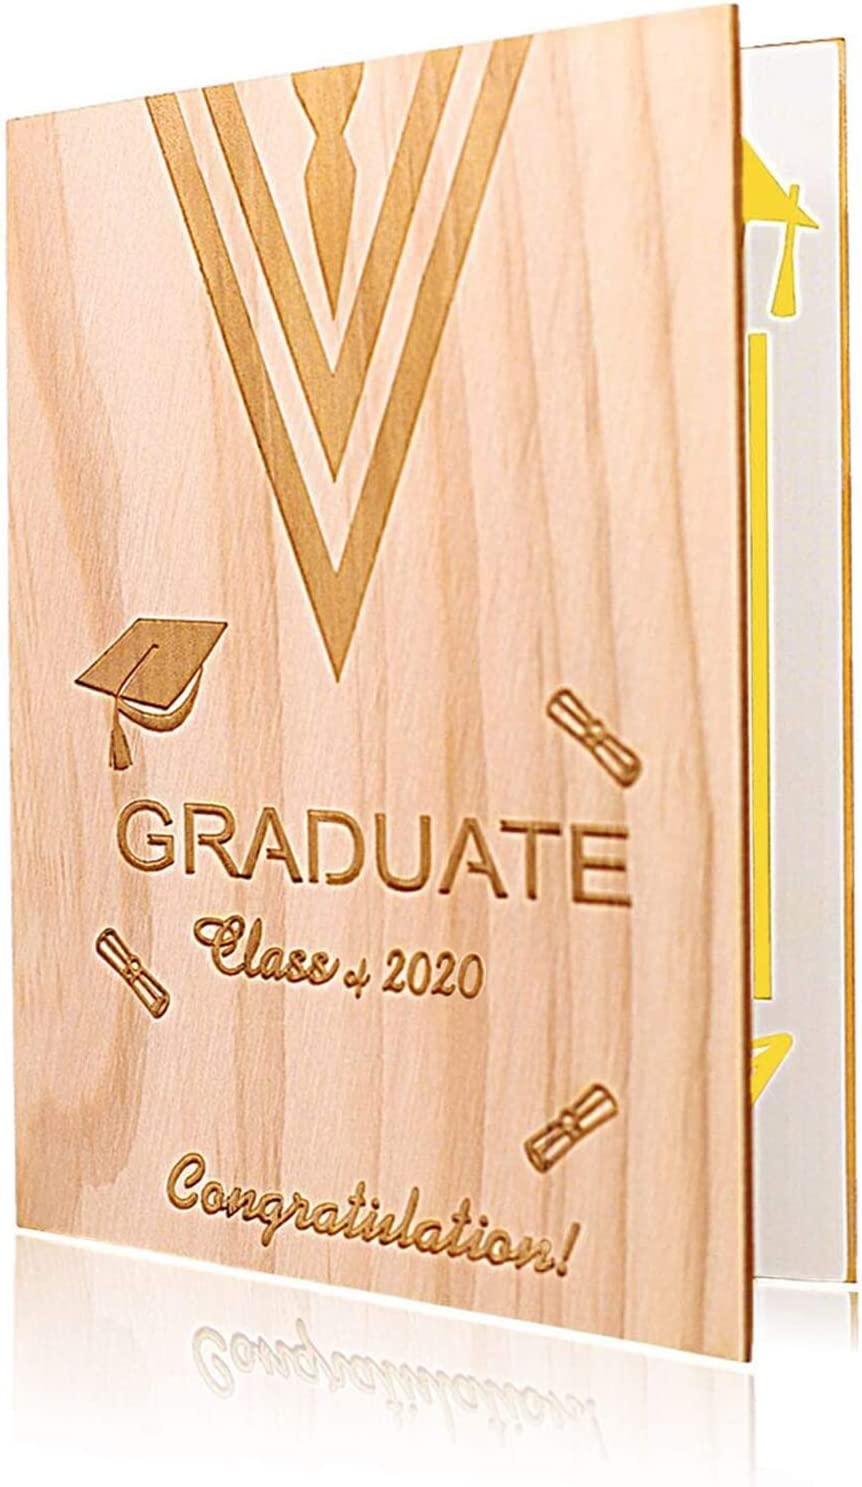 Class of 2020 Graduation Card Nature Pine Wooden Blank Congratulation Greeting Card for New Graduates with Envelope(Clearance-small bug)